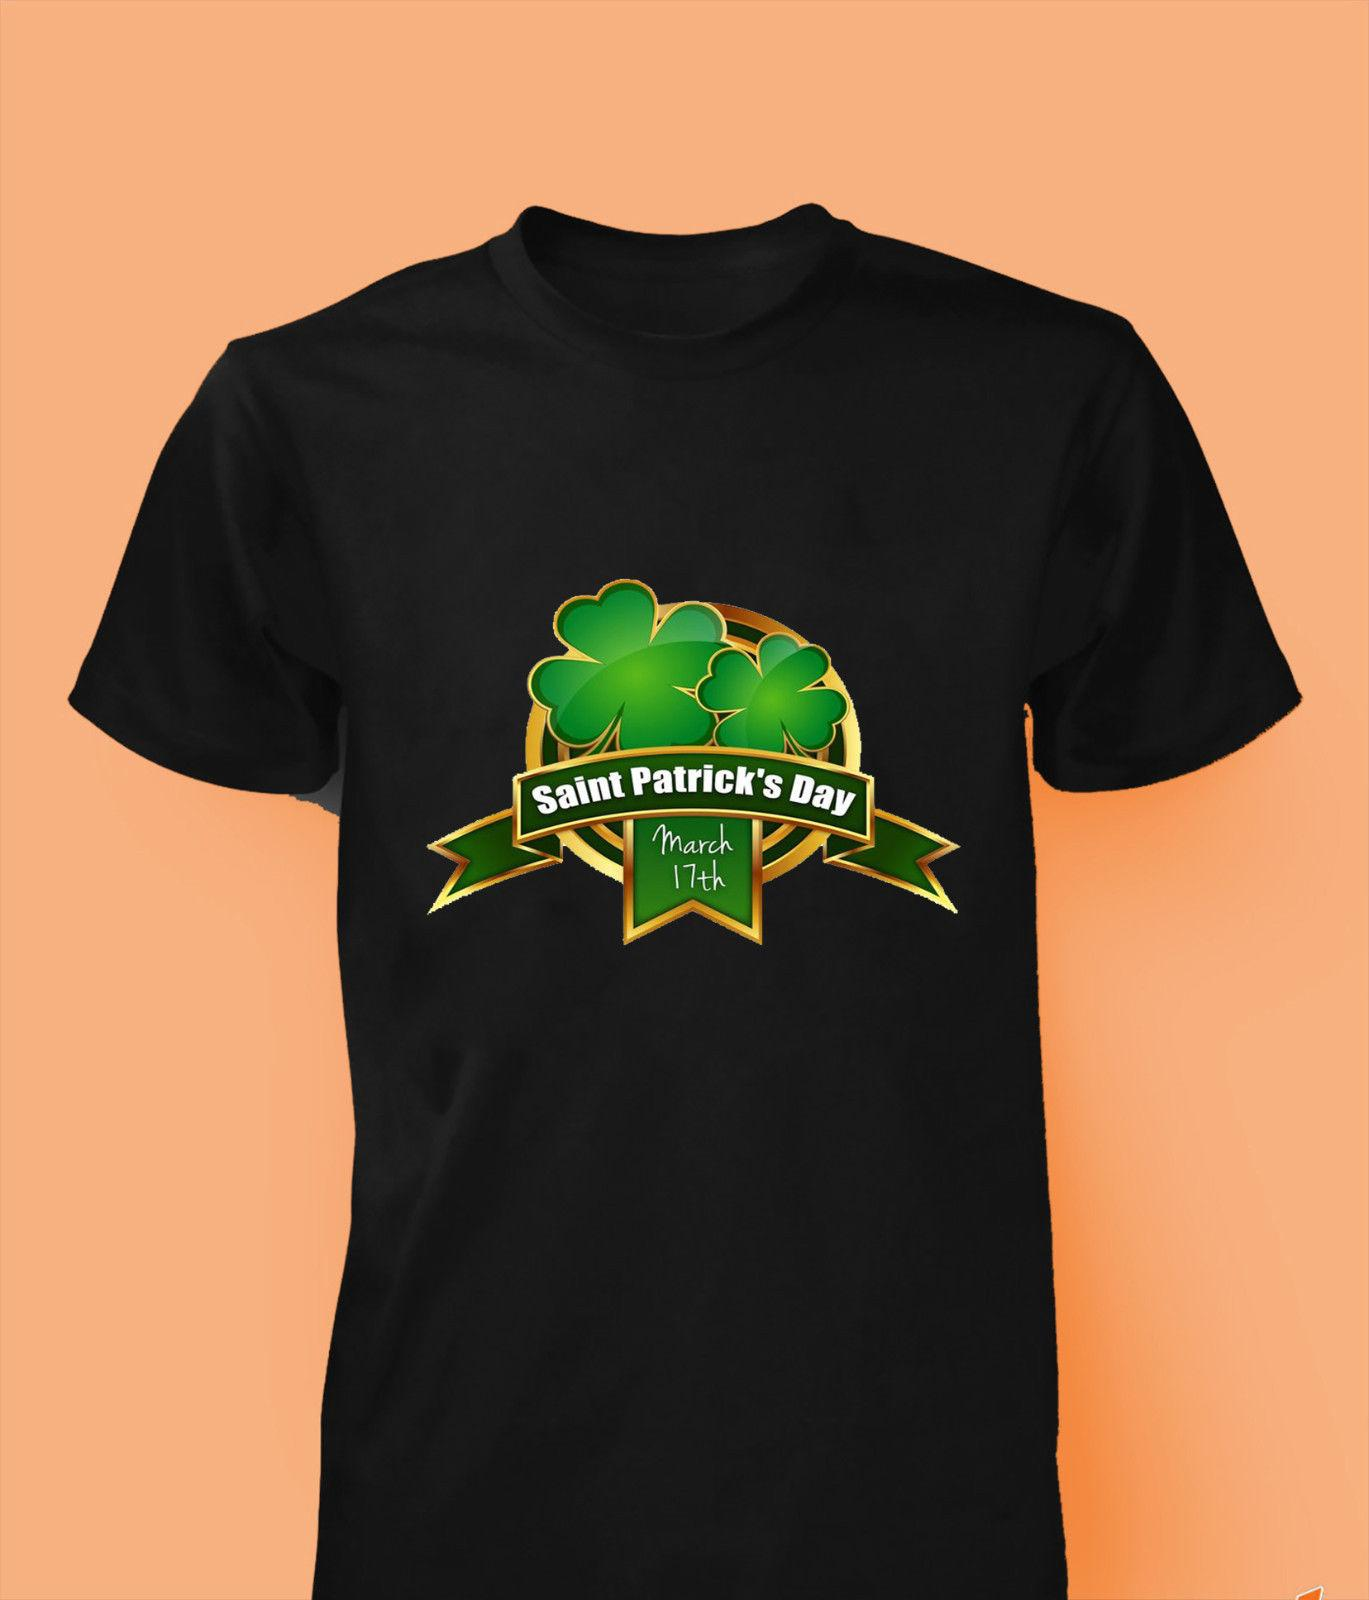 4d143a26 St Patricks Day T Shirt Ireland FLAG Shamrock Paddys Day Men Women Kids  Funny Unisex Casual Tshirt Top Long Sleeve Tee Shirts Design Your Own T  Shirts From ...